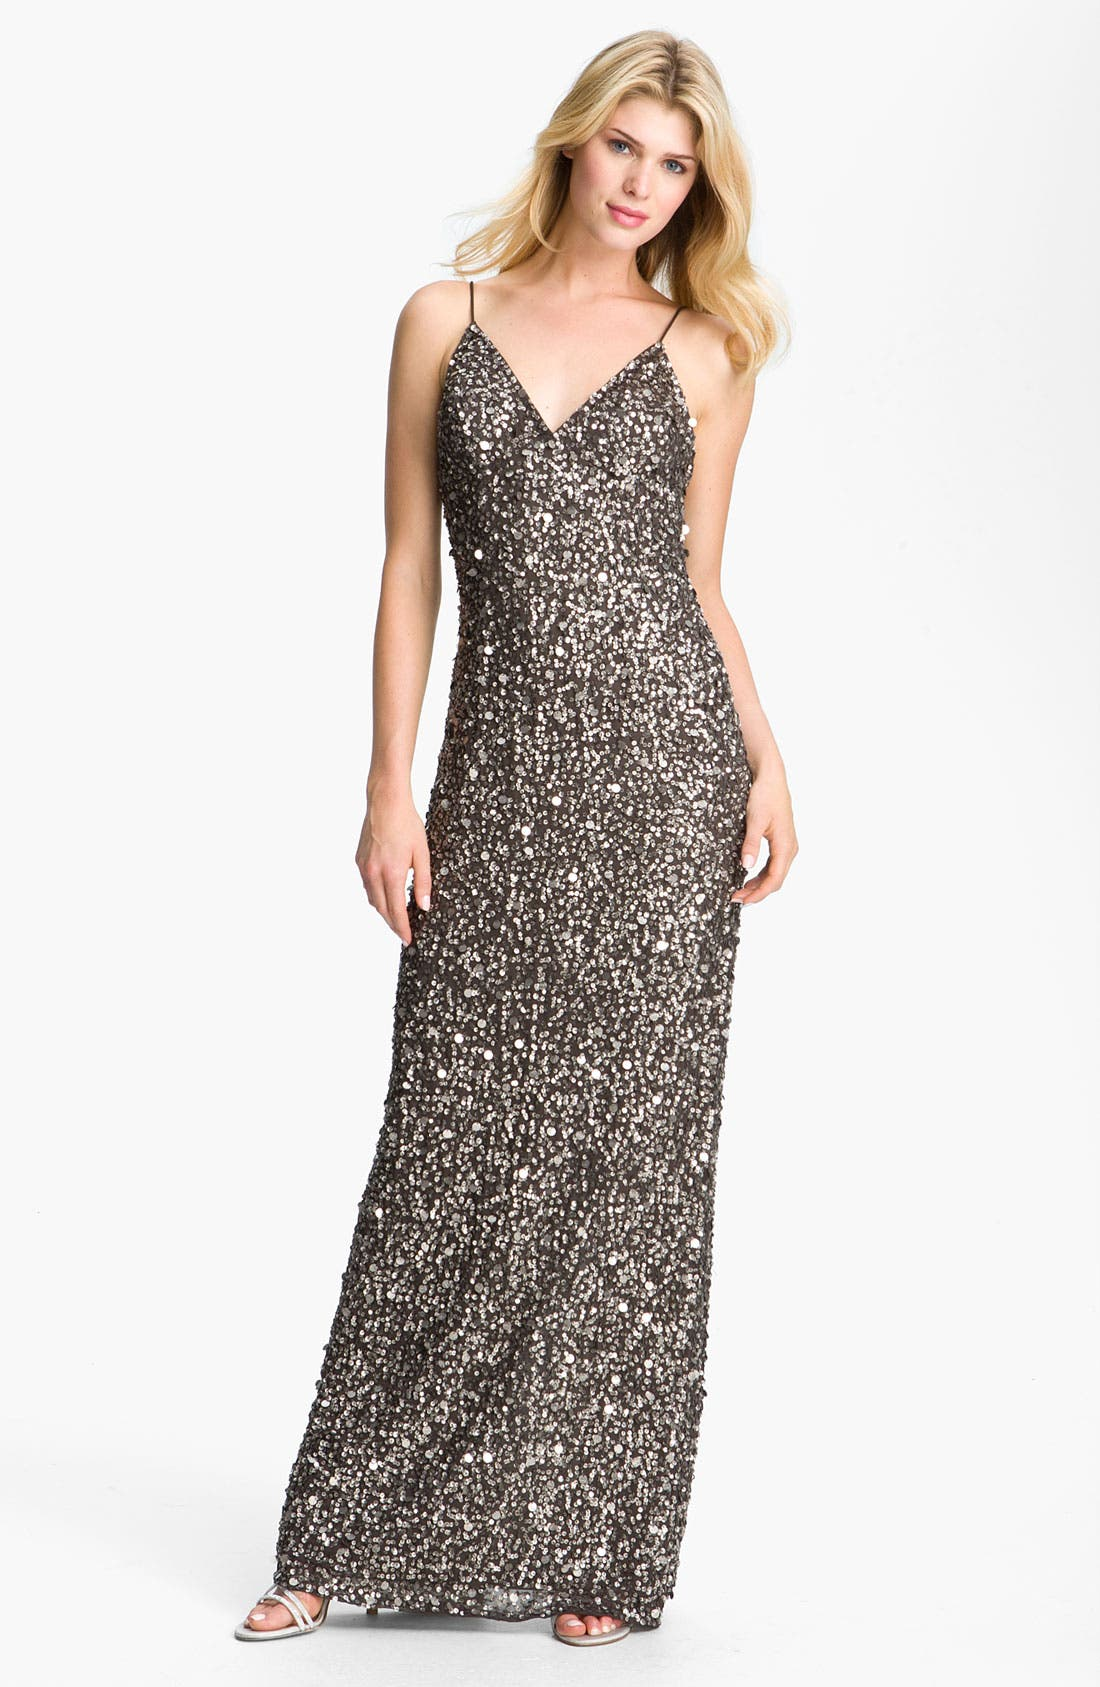 Alternate Image 1 Selected - Adrianna Papell Sequin Chiffon Gown